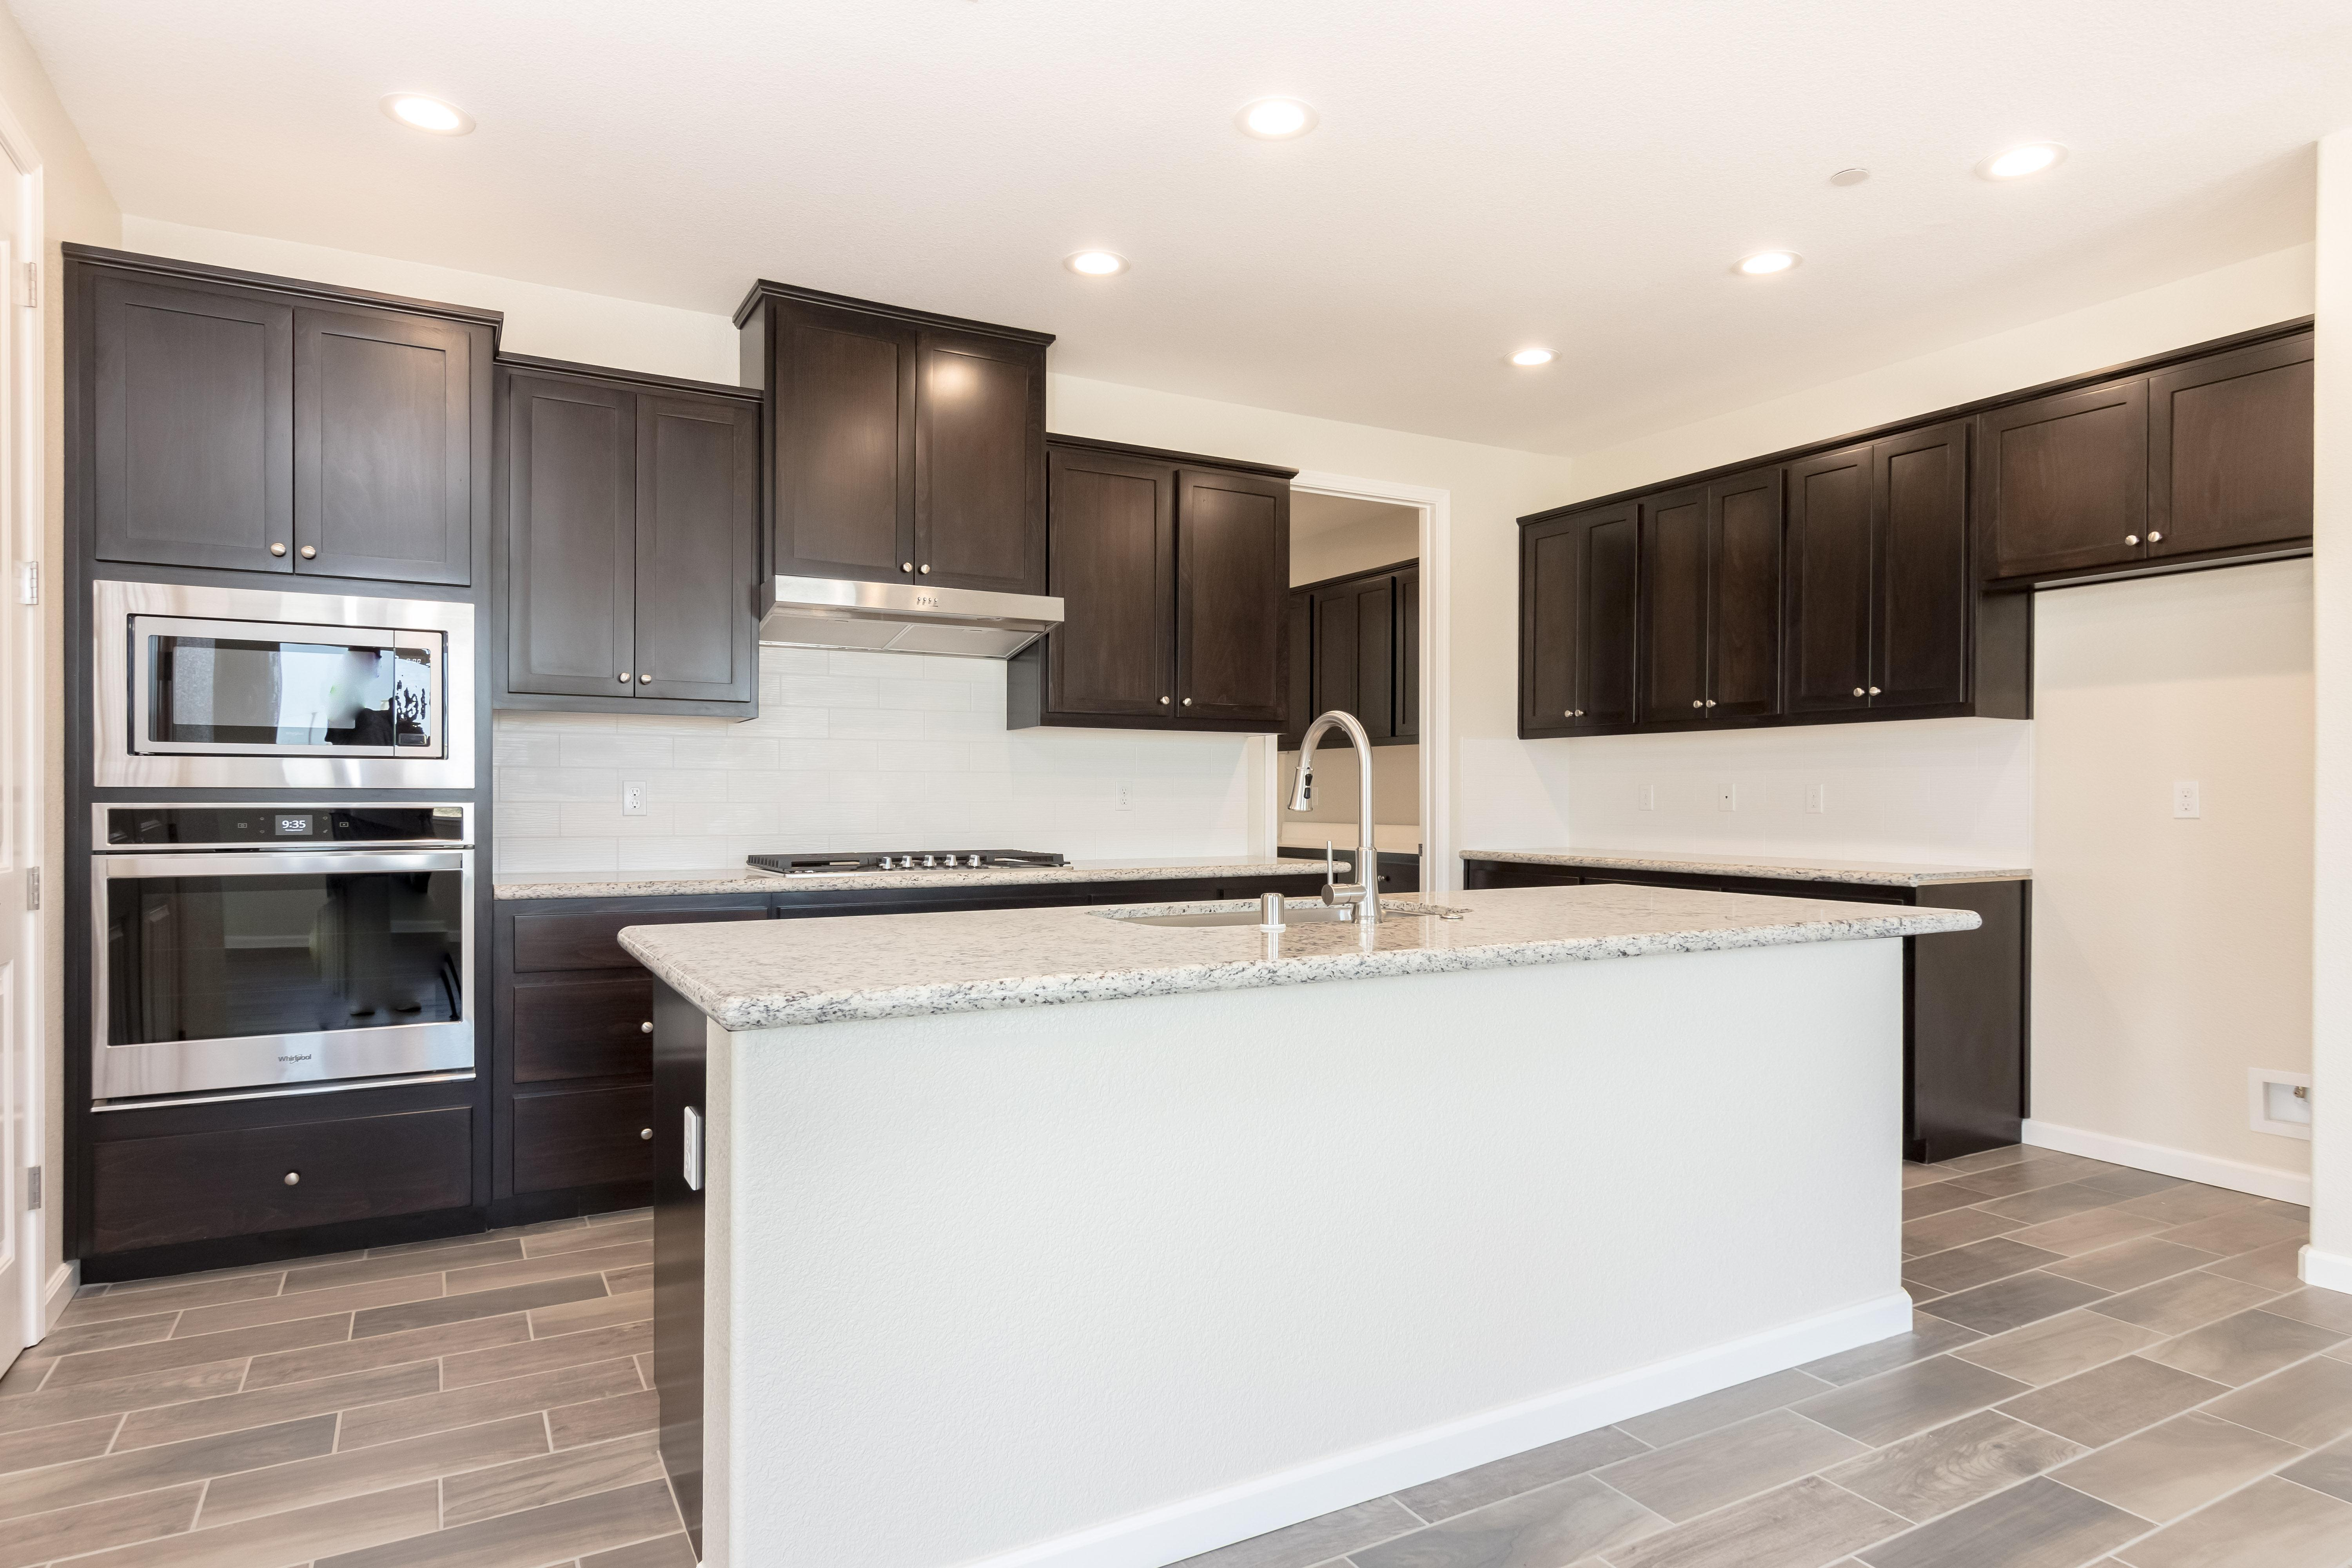 Kitchen featured in The Rubicon By Windward Pacific Builders in Modesto, CA